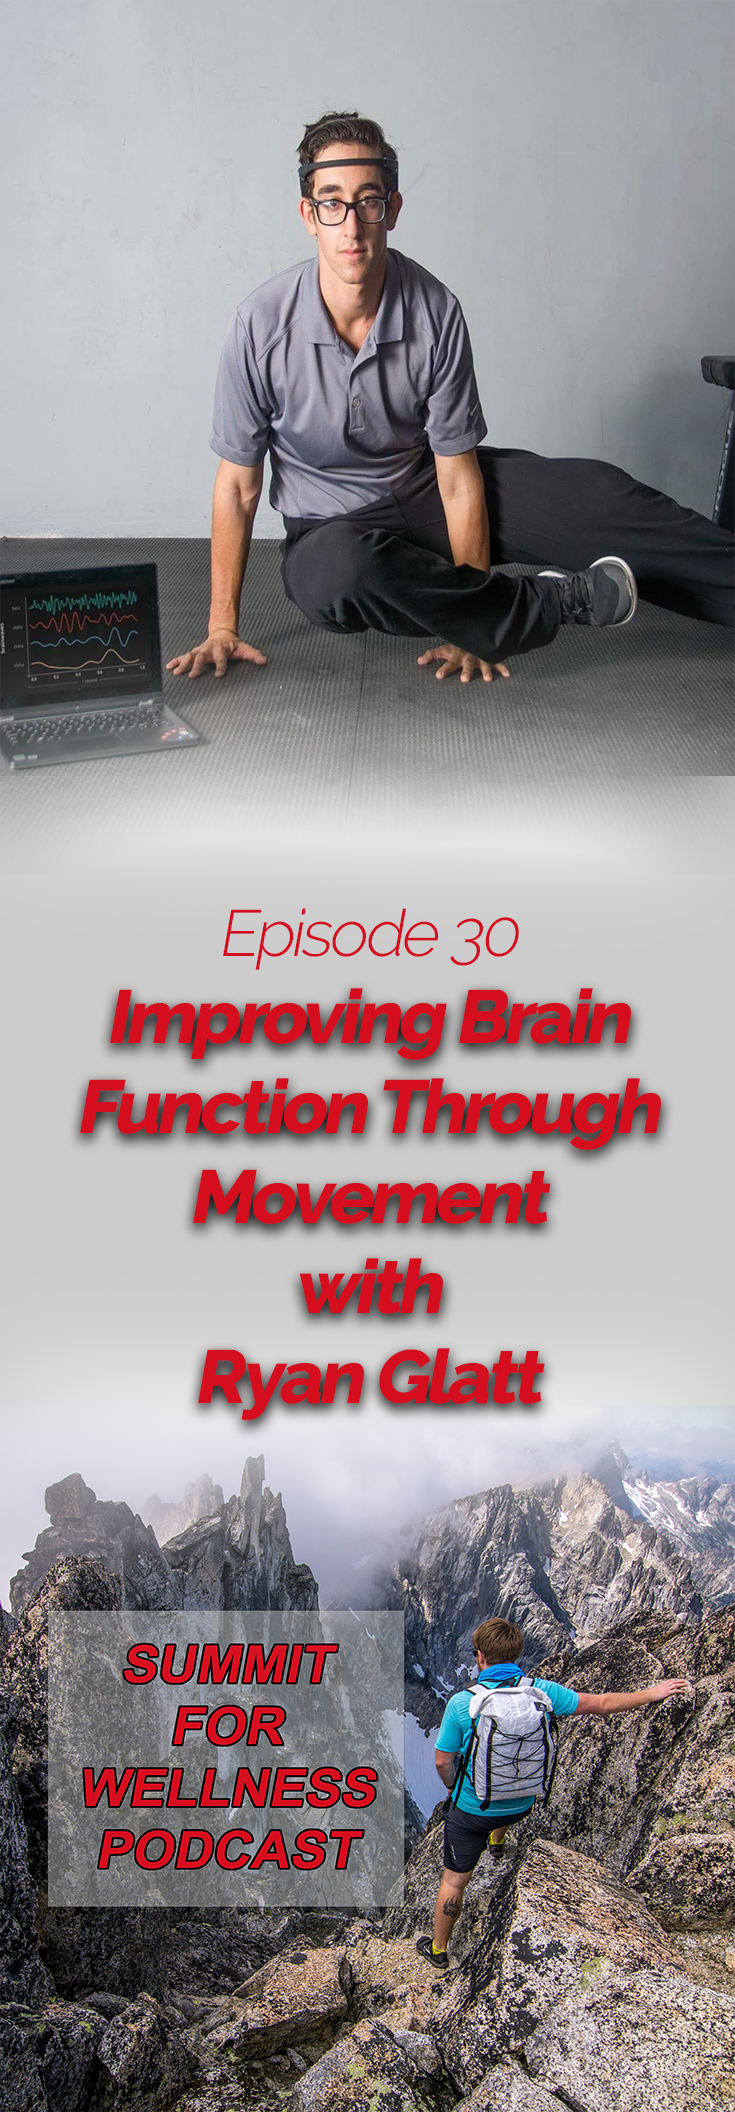 Ryan Glatt discusses how he incorporates movement and exercise to improve overall brain function